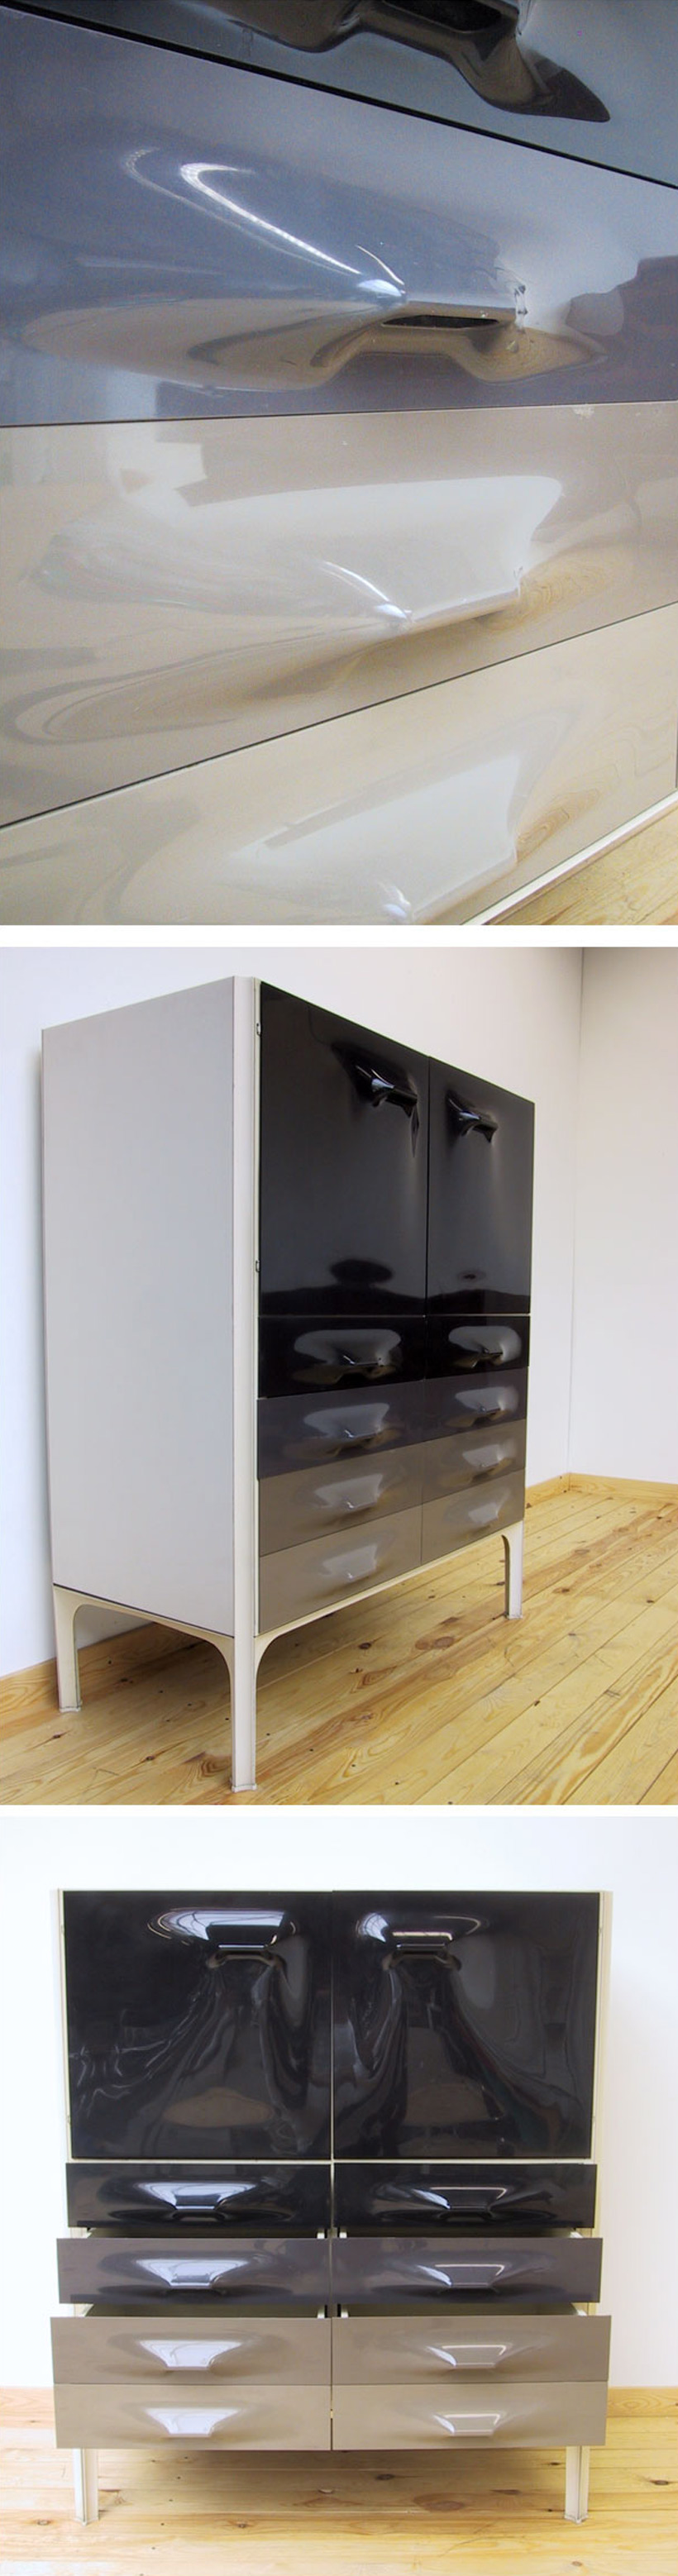 Raymond Loewy DF-2000 cabinet 1960 Modern Space Age Large